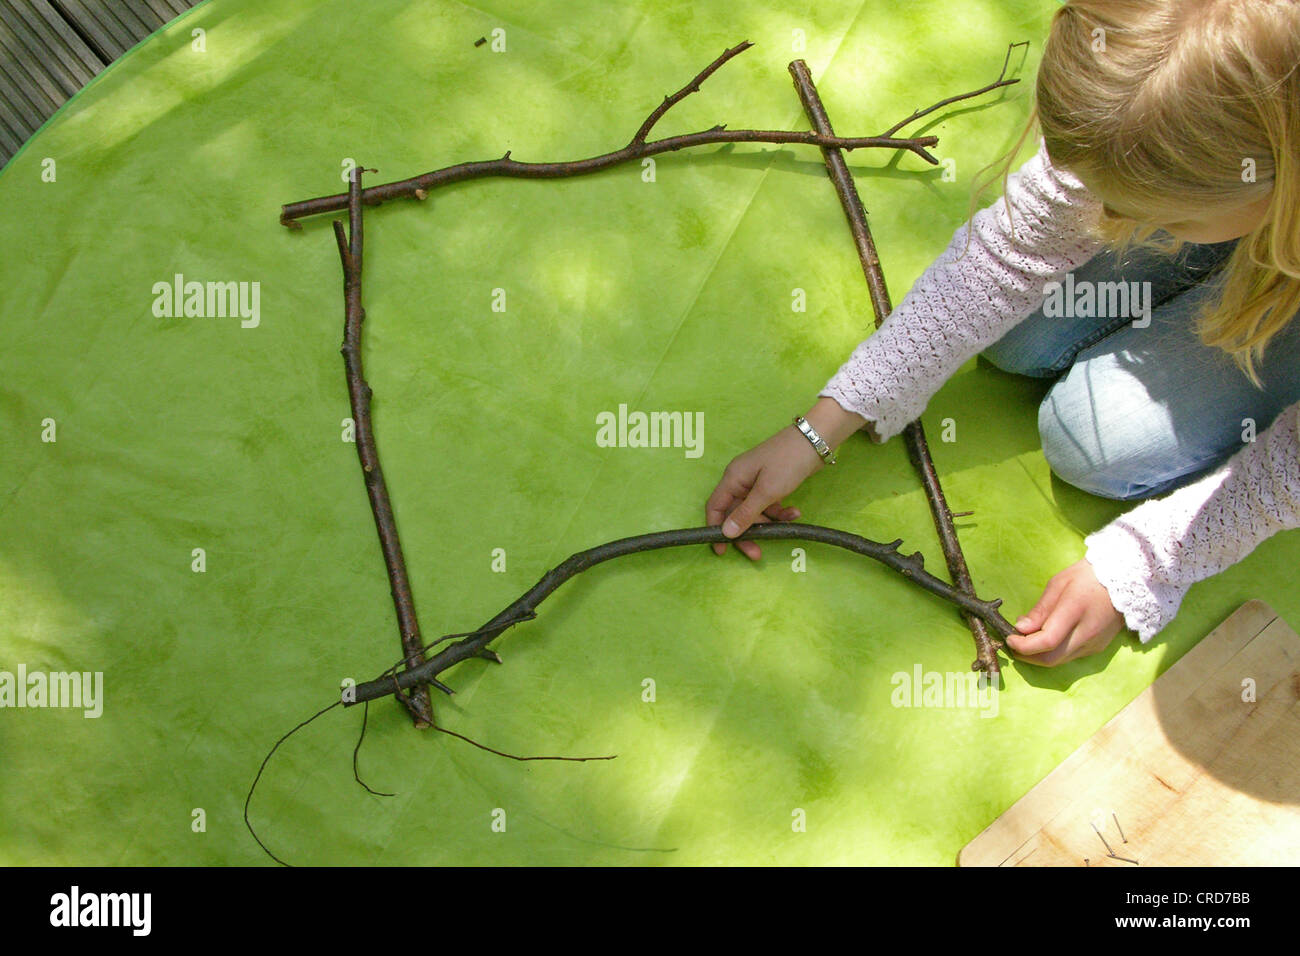 little girl building a picture frame with twigs, series picture 1/7 - Stock Image